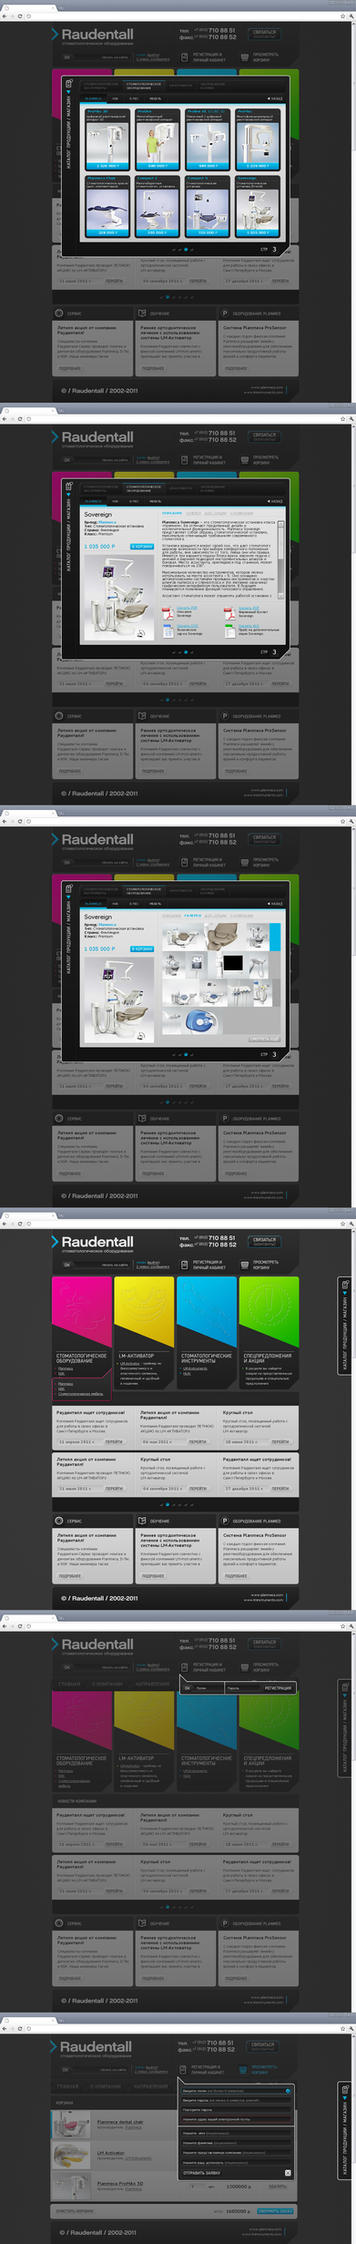 RDNT Interface C by ahillesus